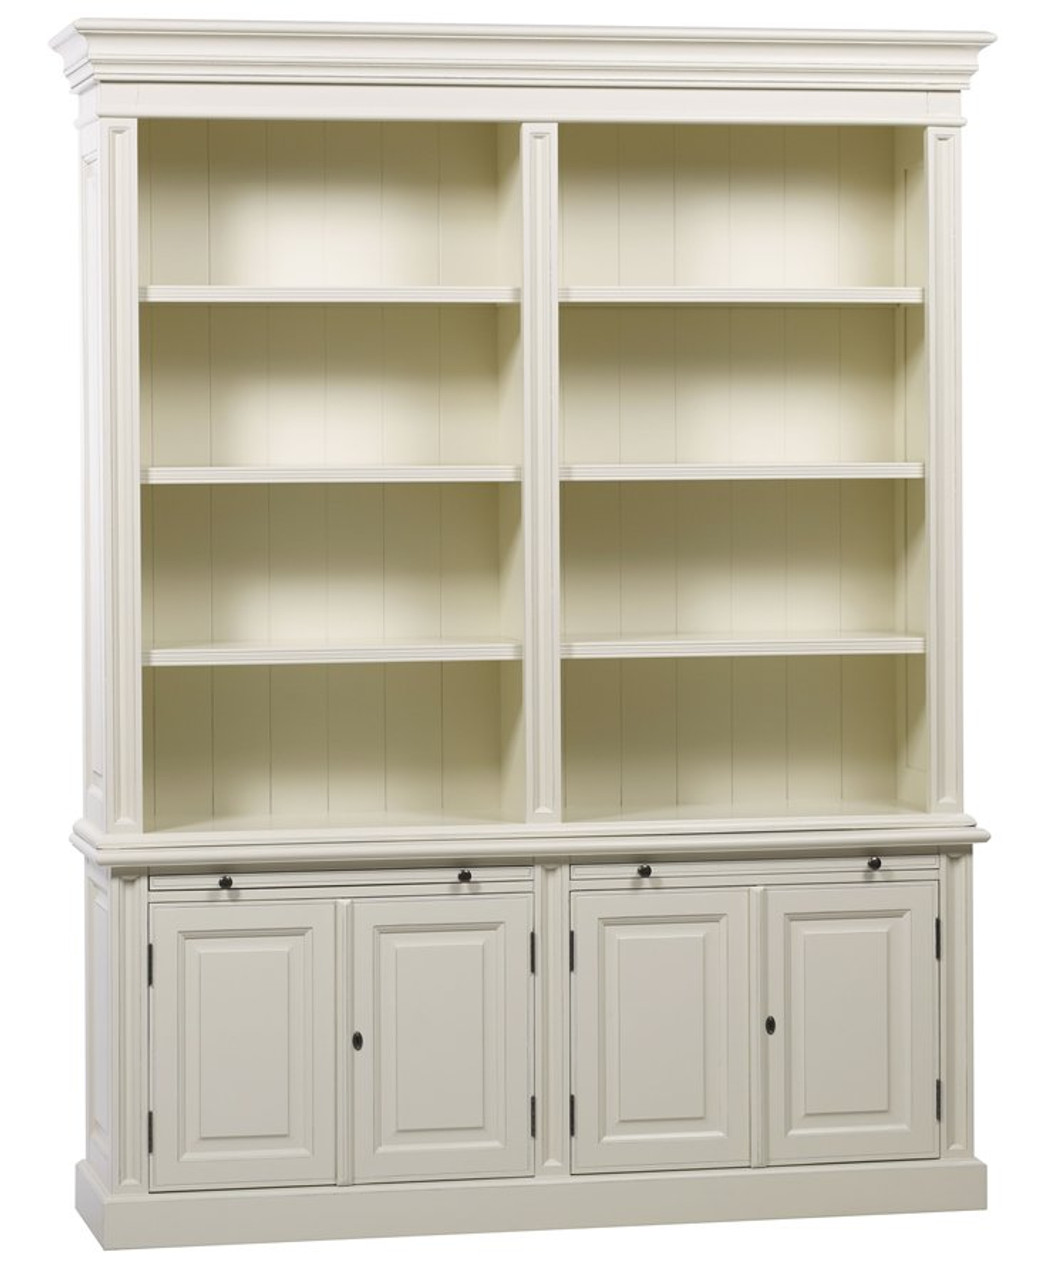 Classic 4 Door Bookcase Antique White